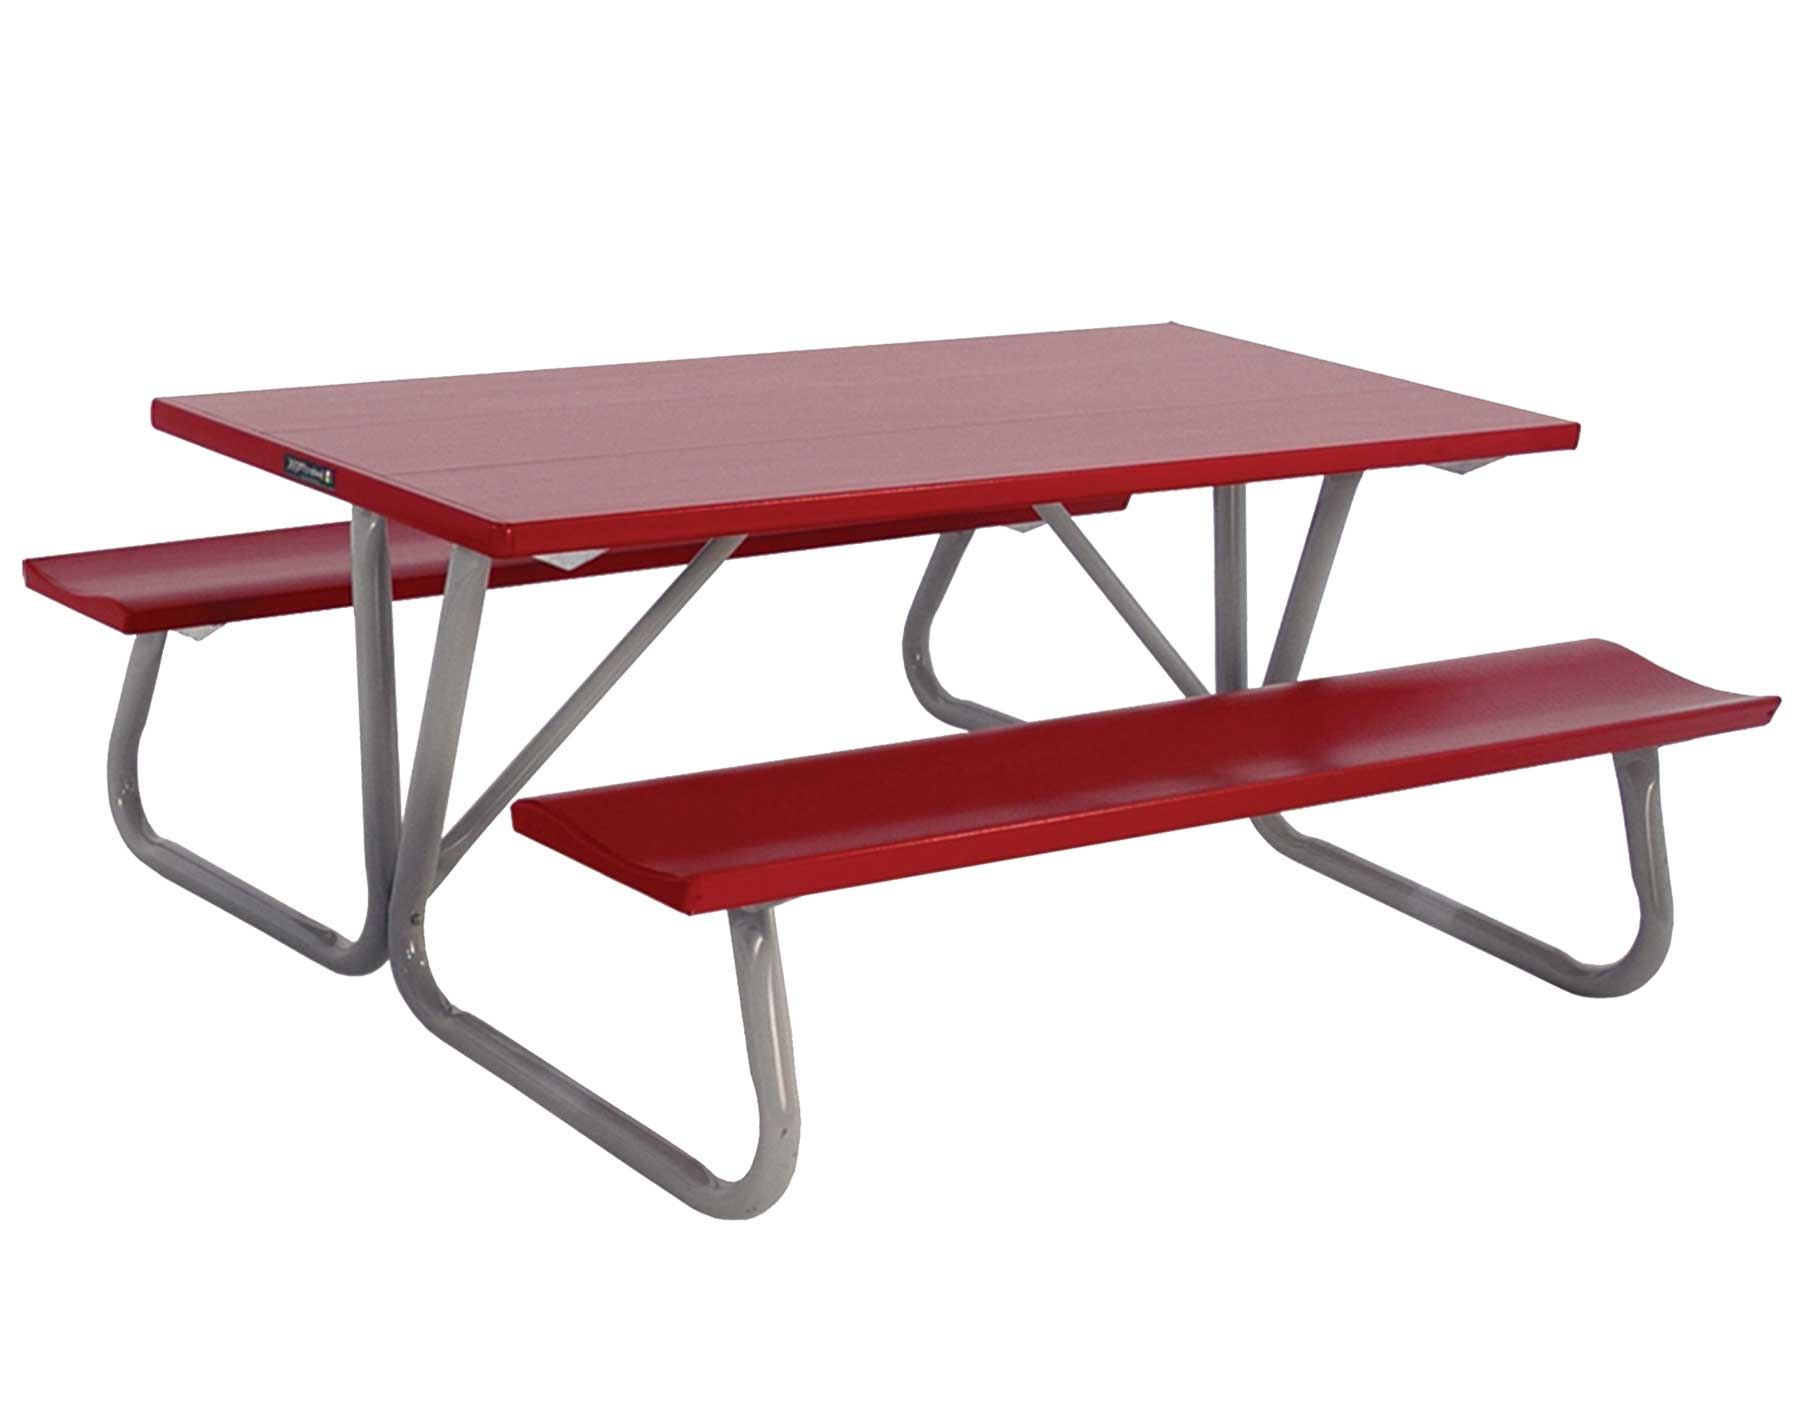 Picnic table clip art free clipart images 4